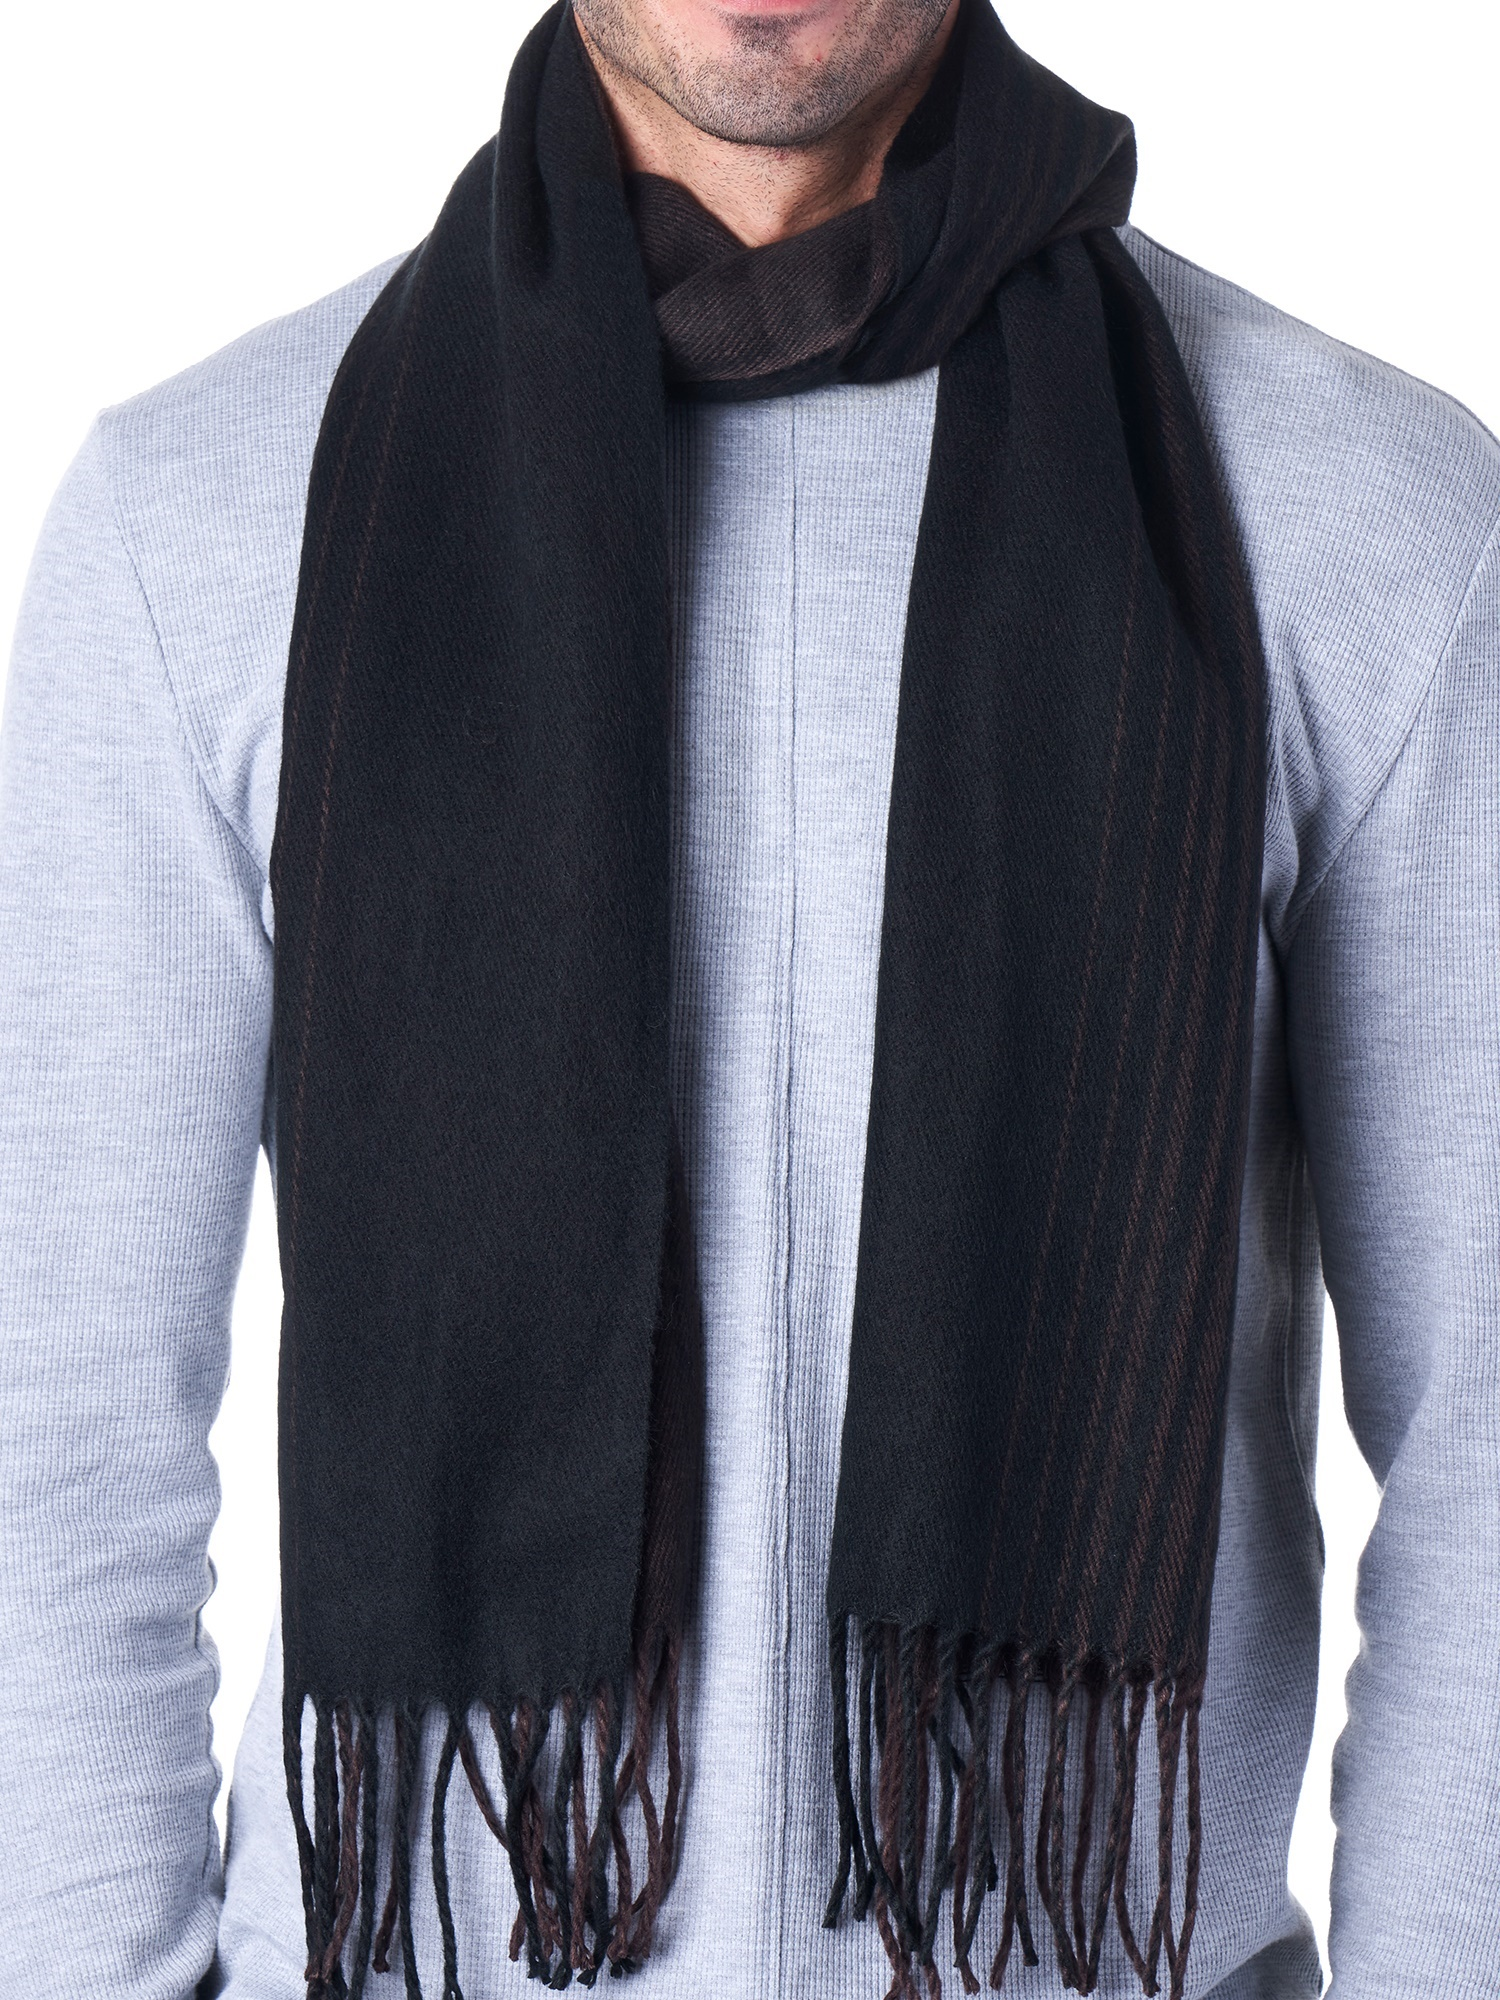 Hammer-Anvil-Mens-Plaid-Striped-Scarf-Womens-Winter-Scarves-Cashmere-Soft-Feel thumbnail 13